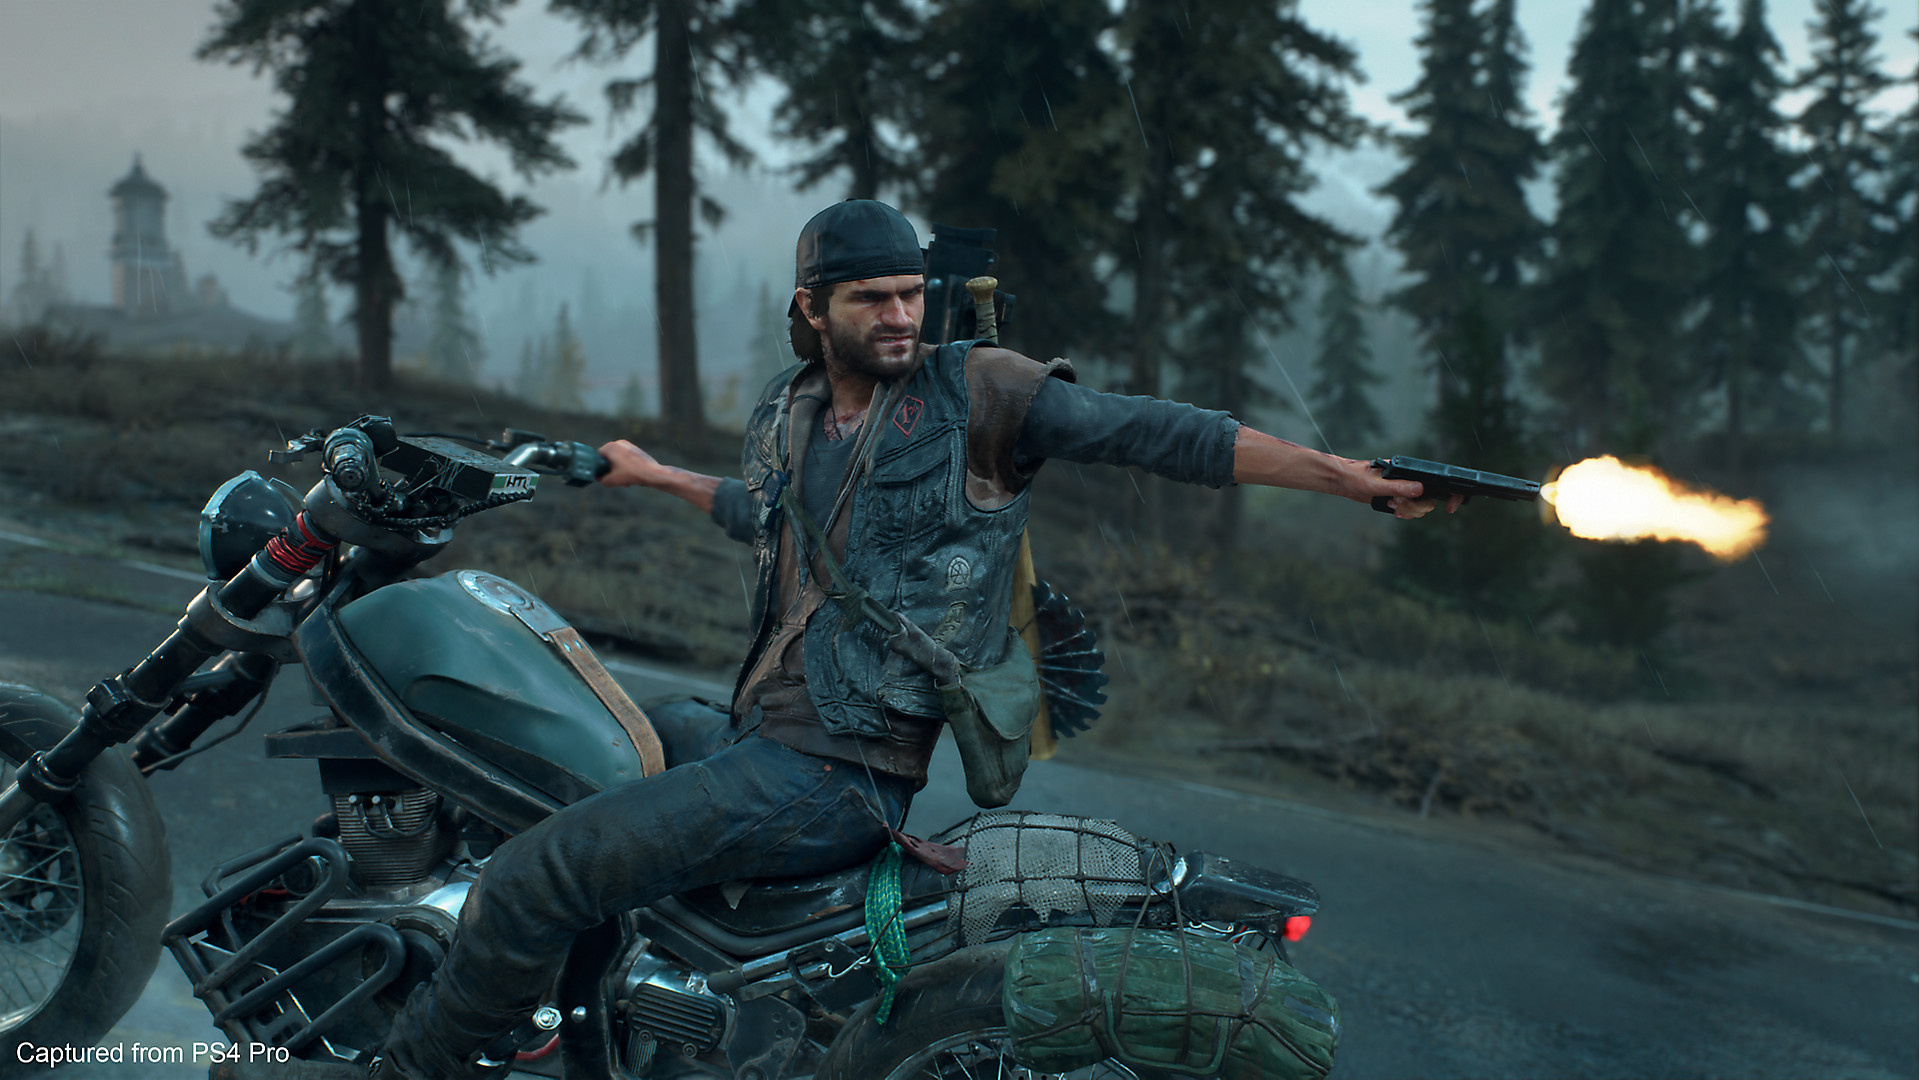 Days Gone Is PlayStation Game of the Year at This Year's Golden Joystick Awards